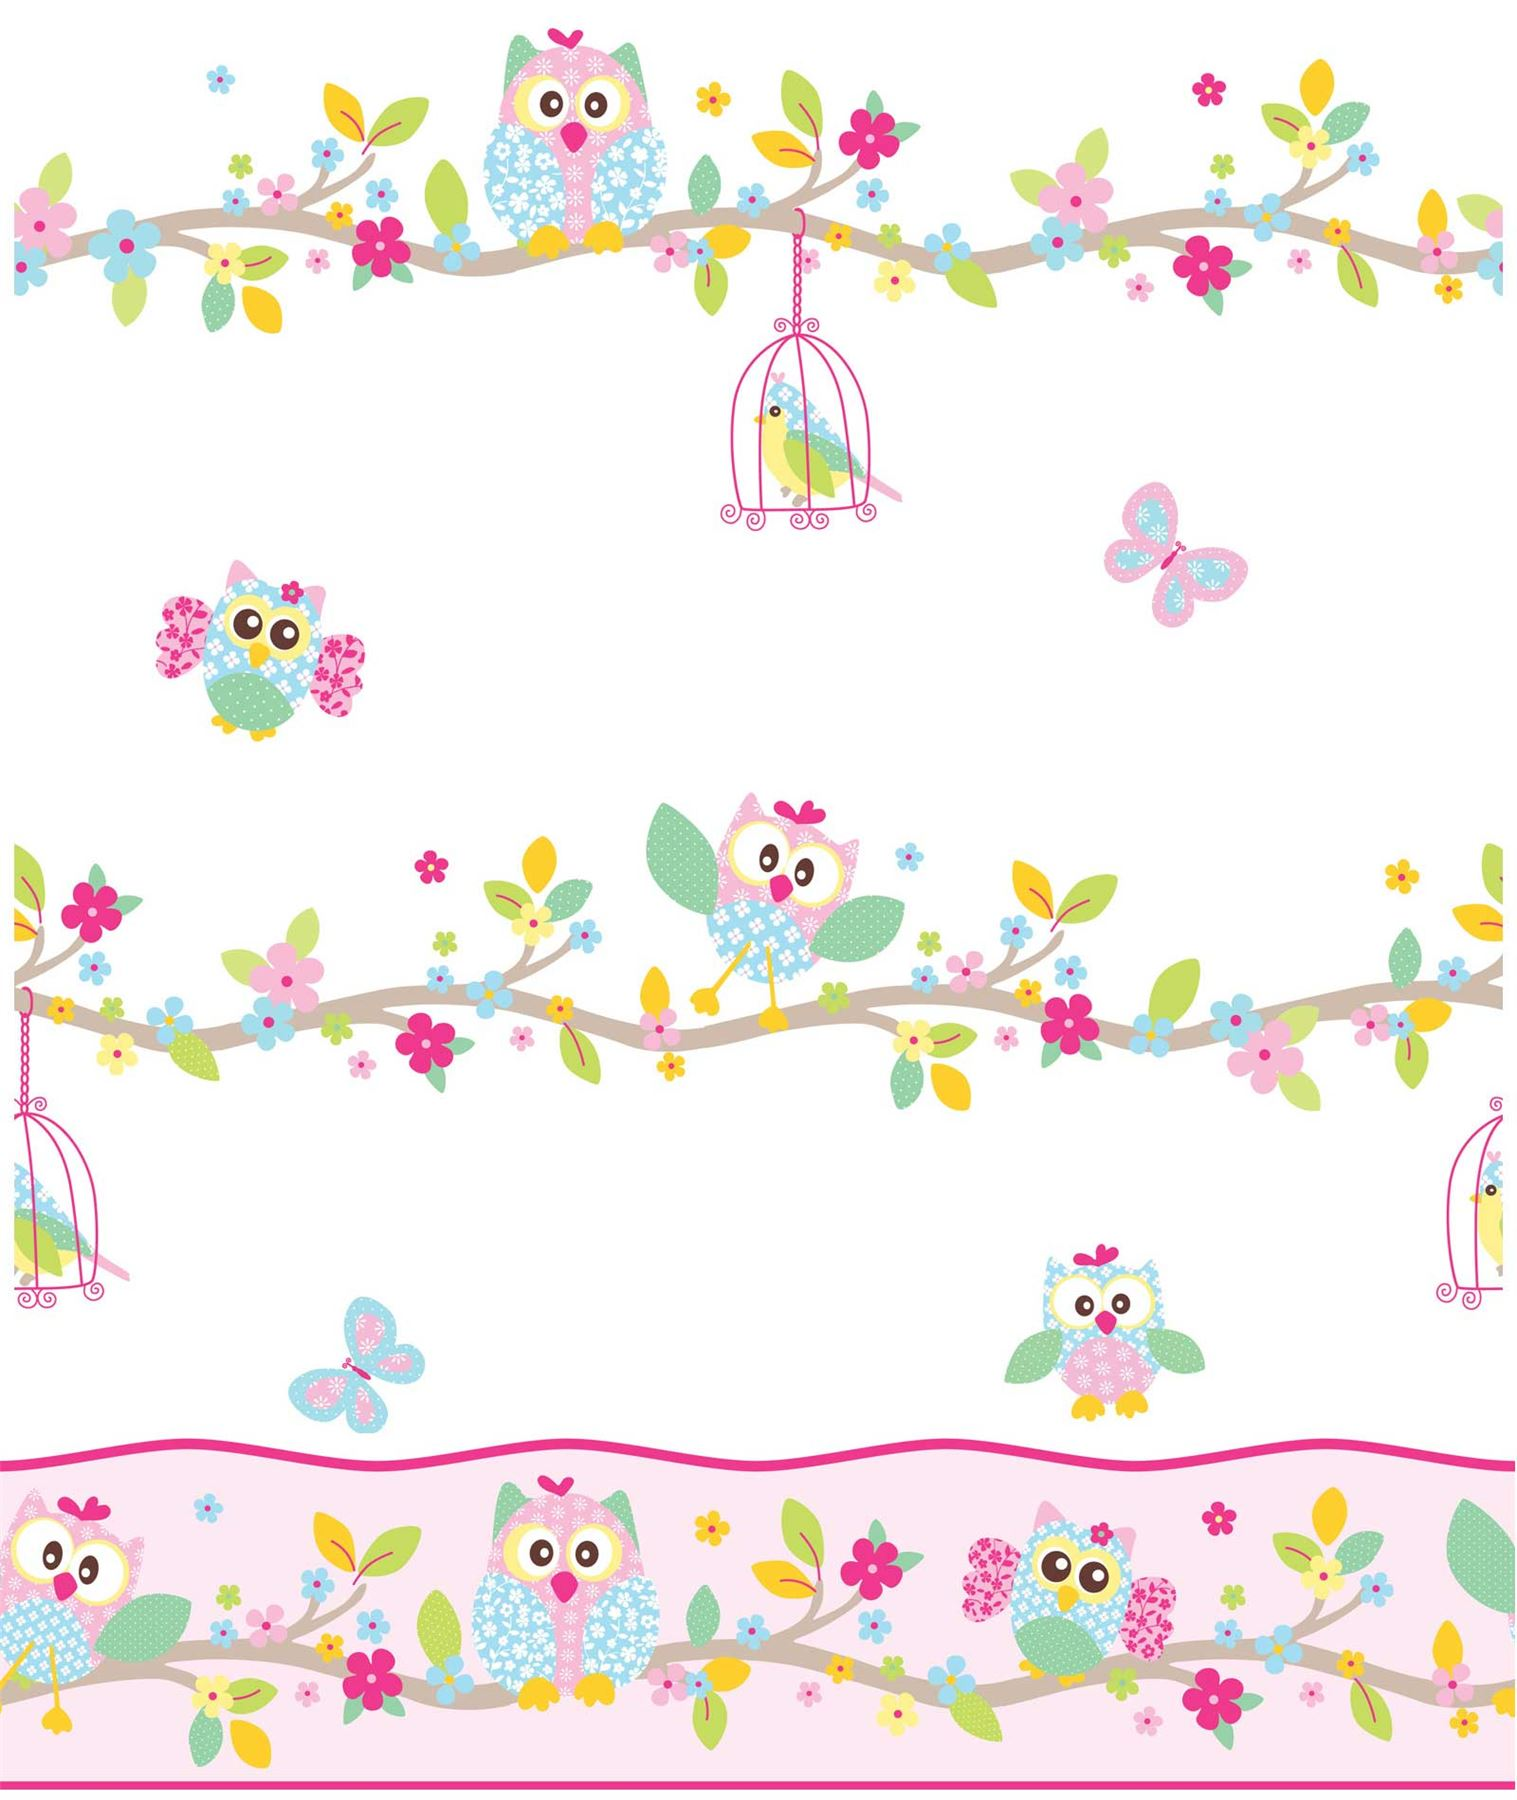 Fantastic Wallpaper Hello Kitty Pastel - 2c5ef40f-0fe7-4596-be6c-bd65cfd62bb1  Perfect Image Reference_73496.jpg